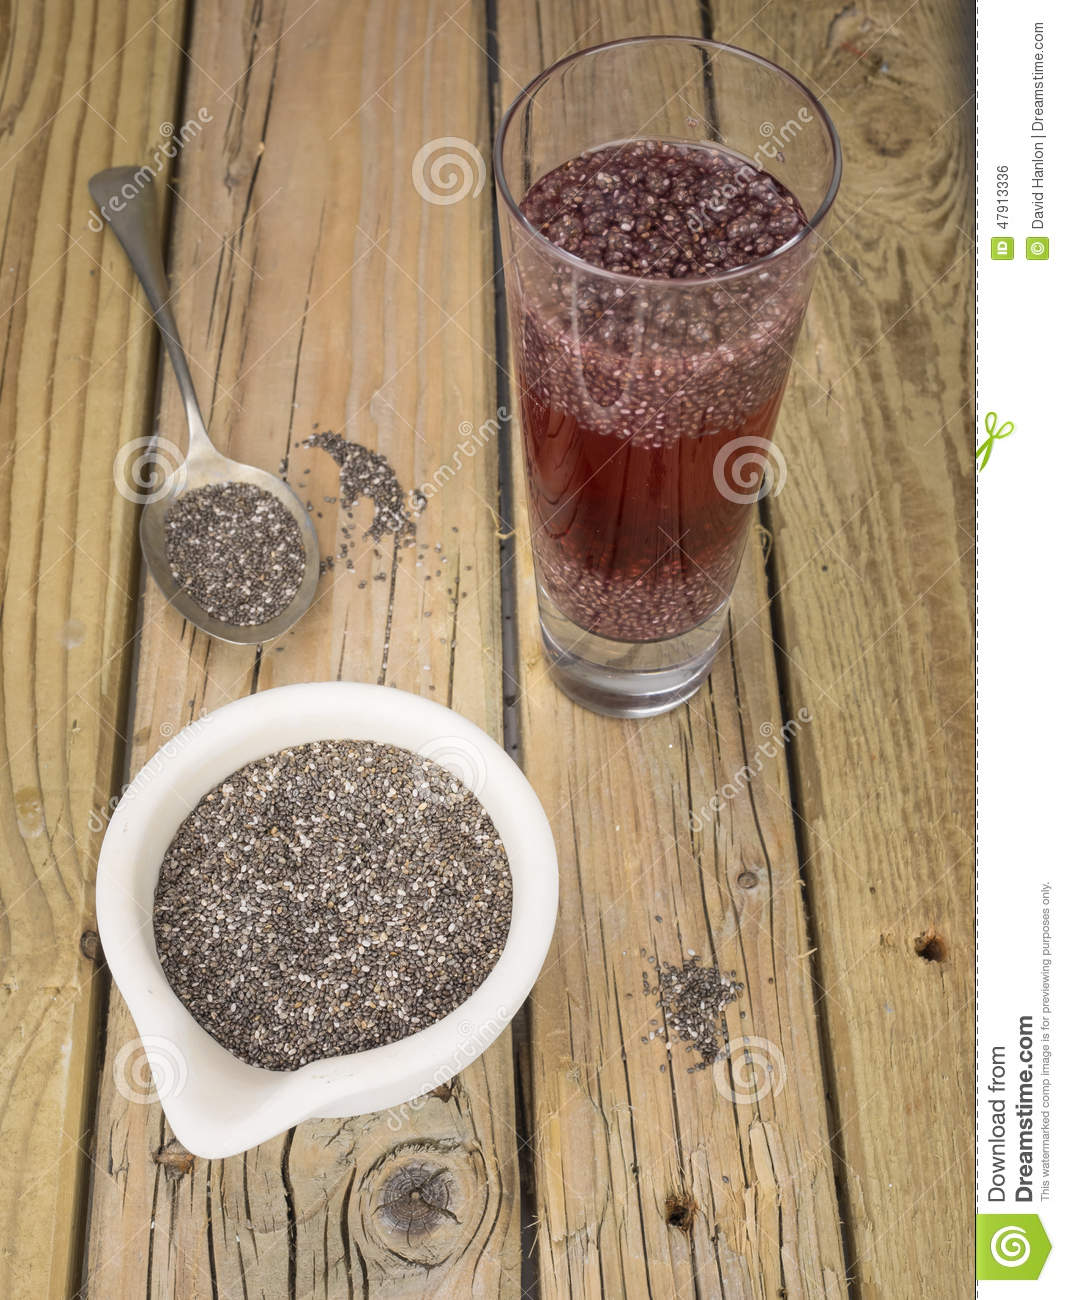 how to drink chia seeds in the morning